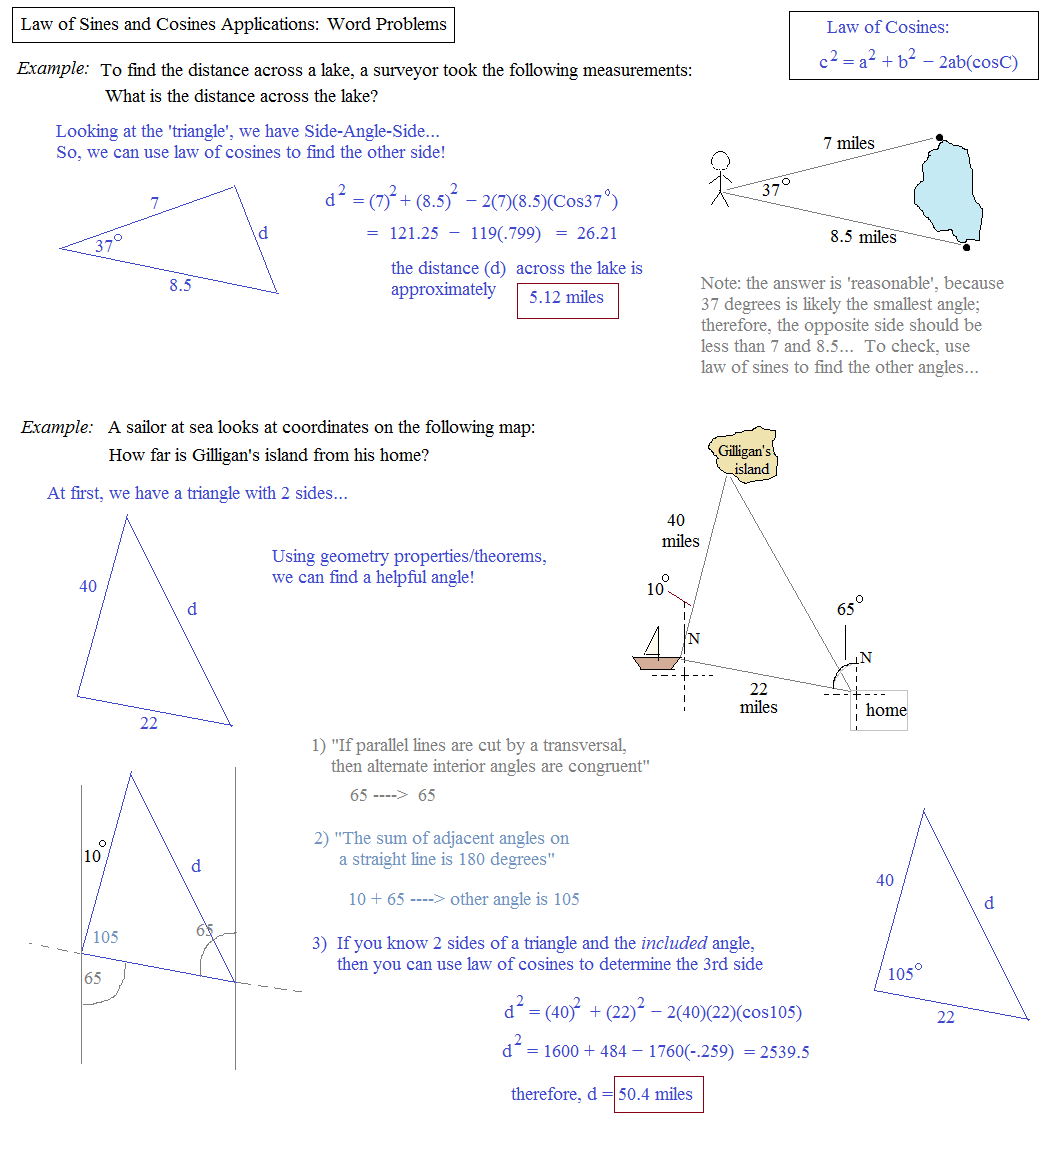 Worksheet Law Of Sines And Cosines Worksheet math plane law of sines and cosines area triangles trigonometry word problem examples